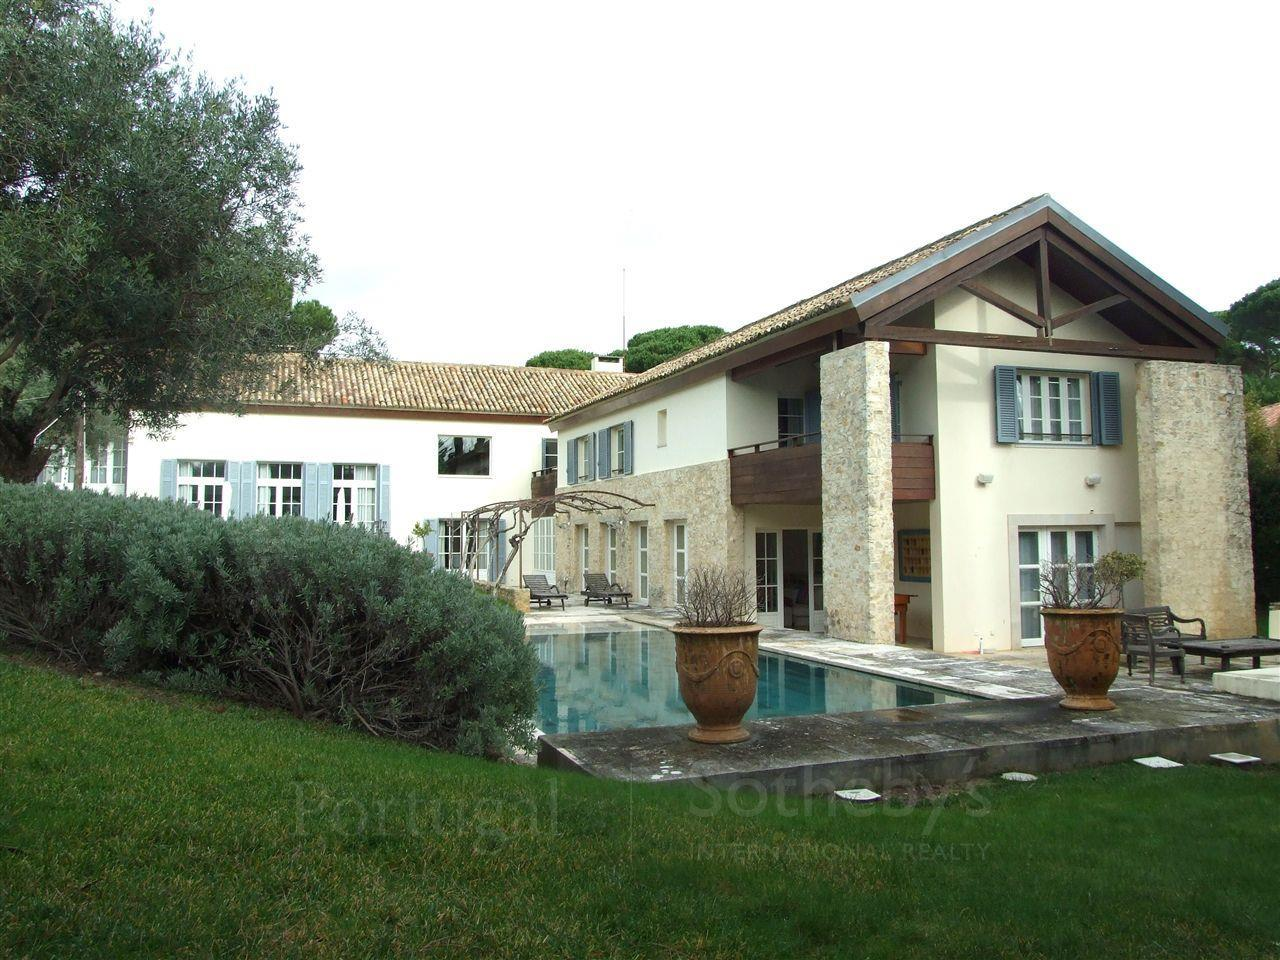 独户住宅 为 销售 在 House, 5 bedrooms, for Sale Quinta Patino, Cascais, 葡京 葡萄牙